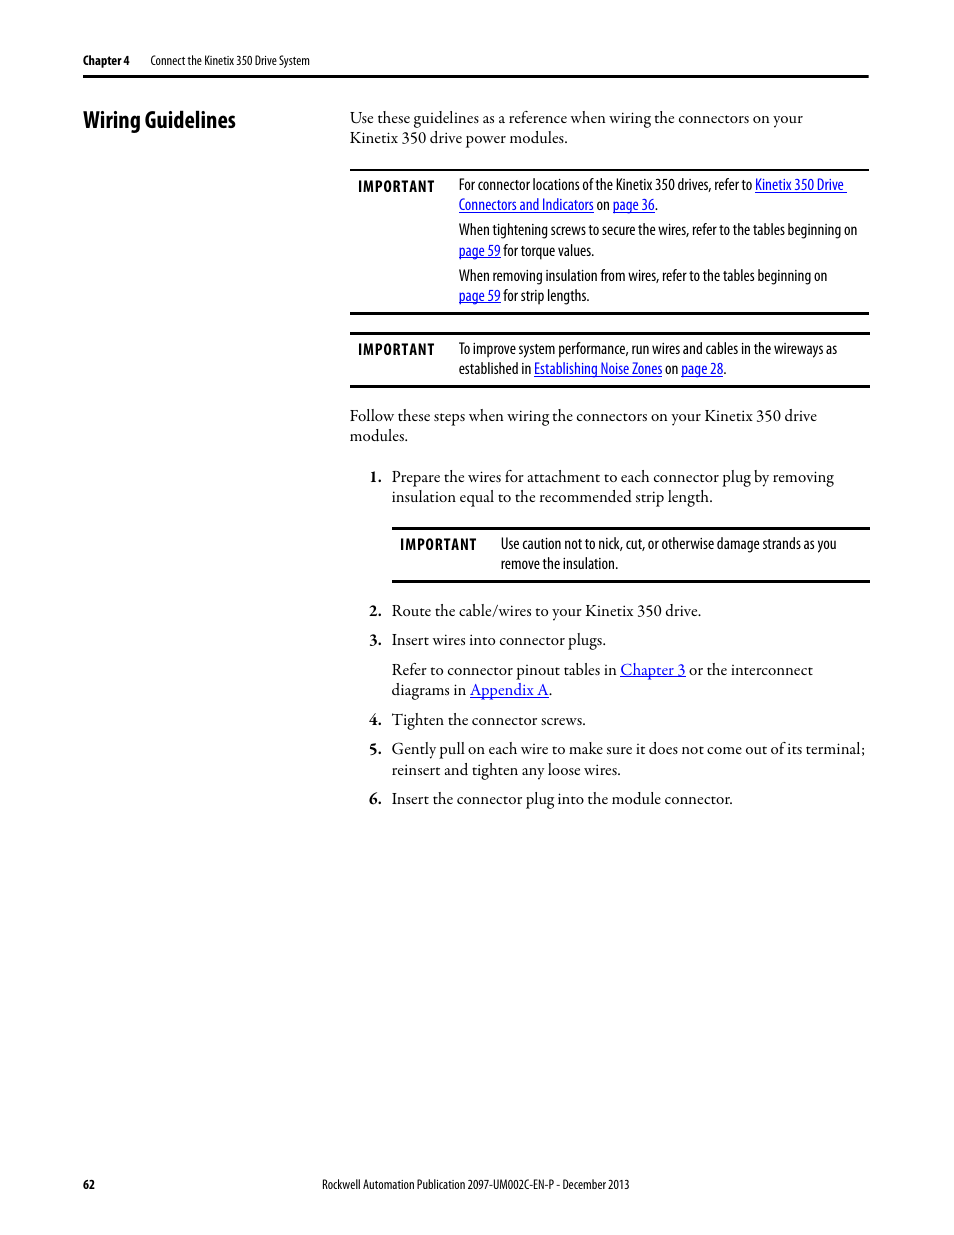 Wiring guidelines | Rockwell Automation 2097-Vxxx Kinetix 350 ...